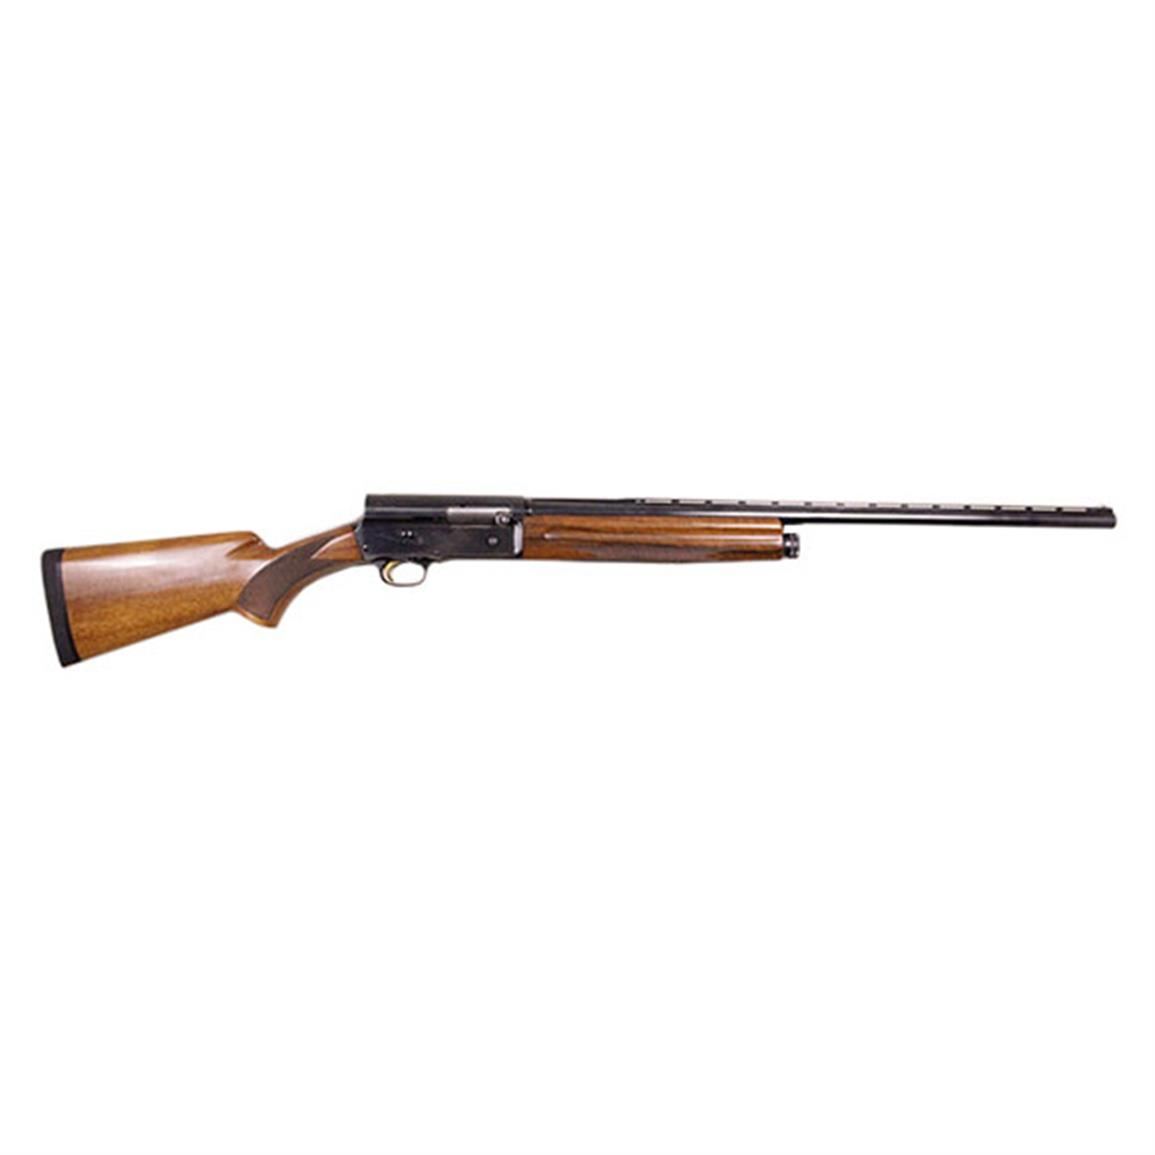 Browning A5 Sweet Sixteen, Semi-automatic, 16 Gauge, 0118005005, 023614439578, 26